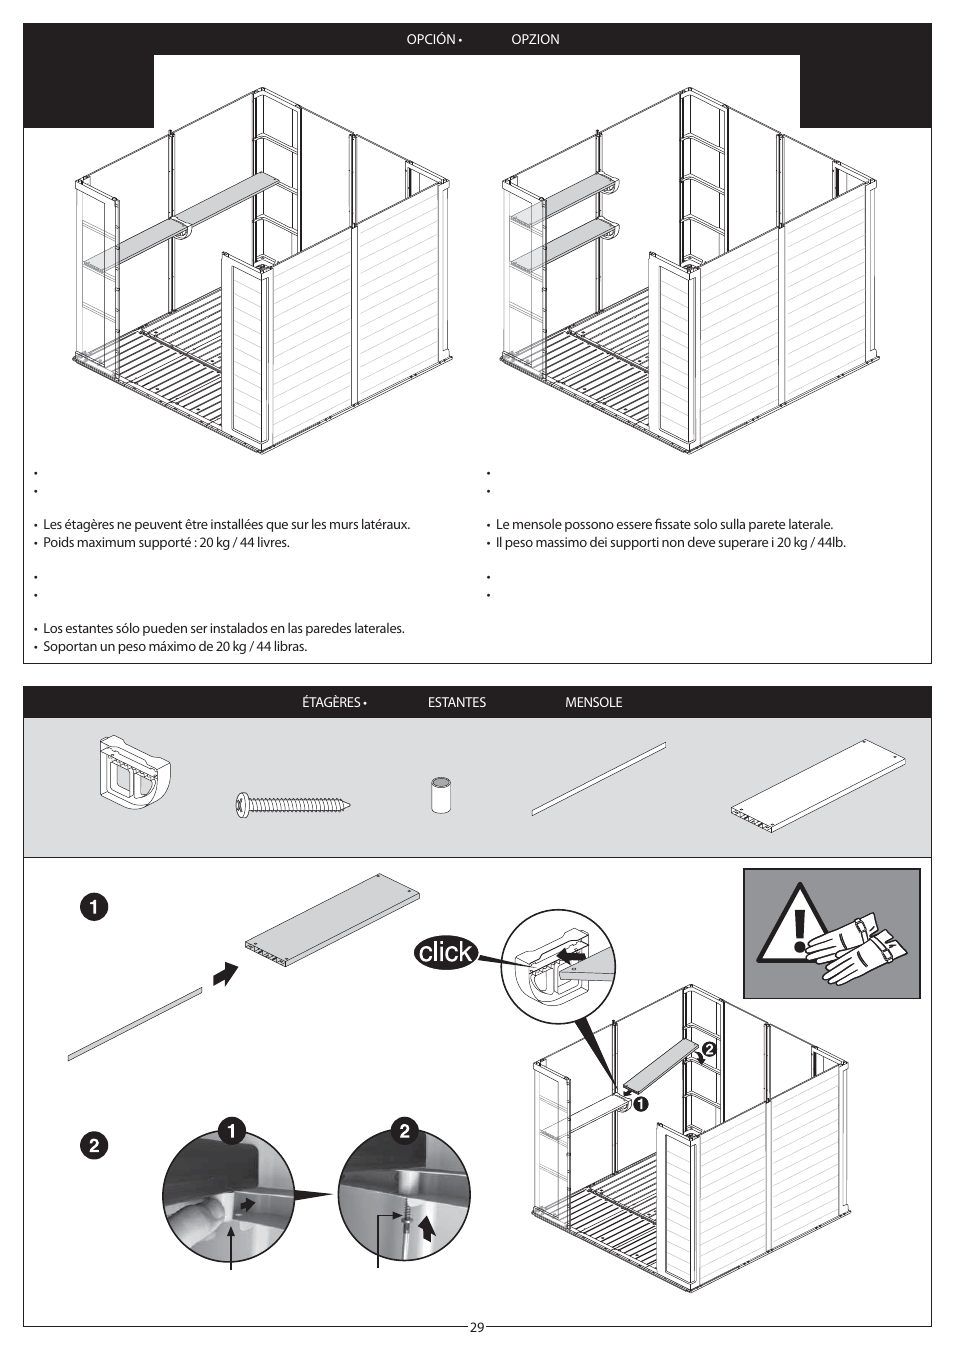 Kg A Libras Keter Apex 8x6 User Manual Page 29 32